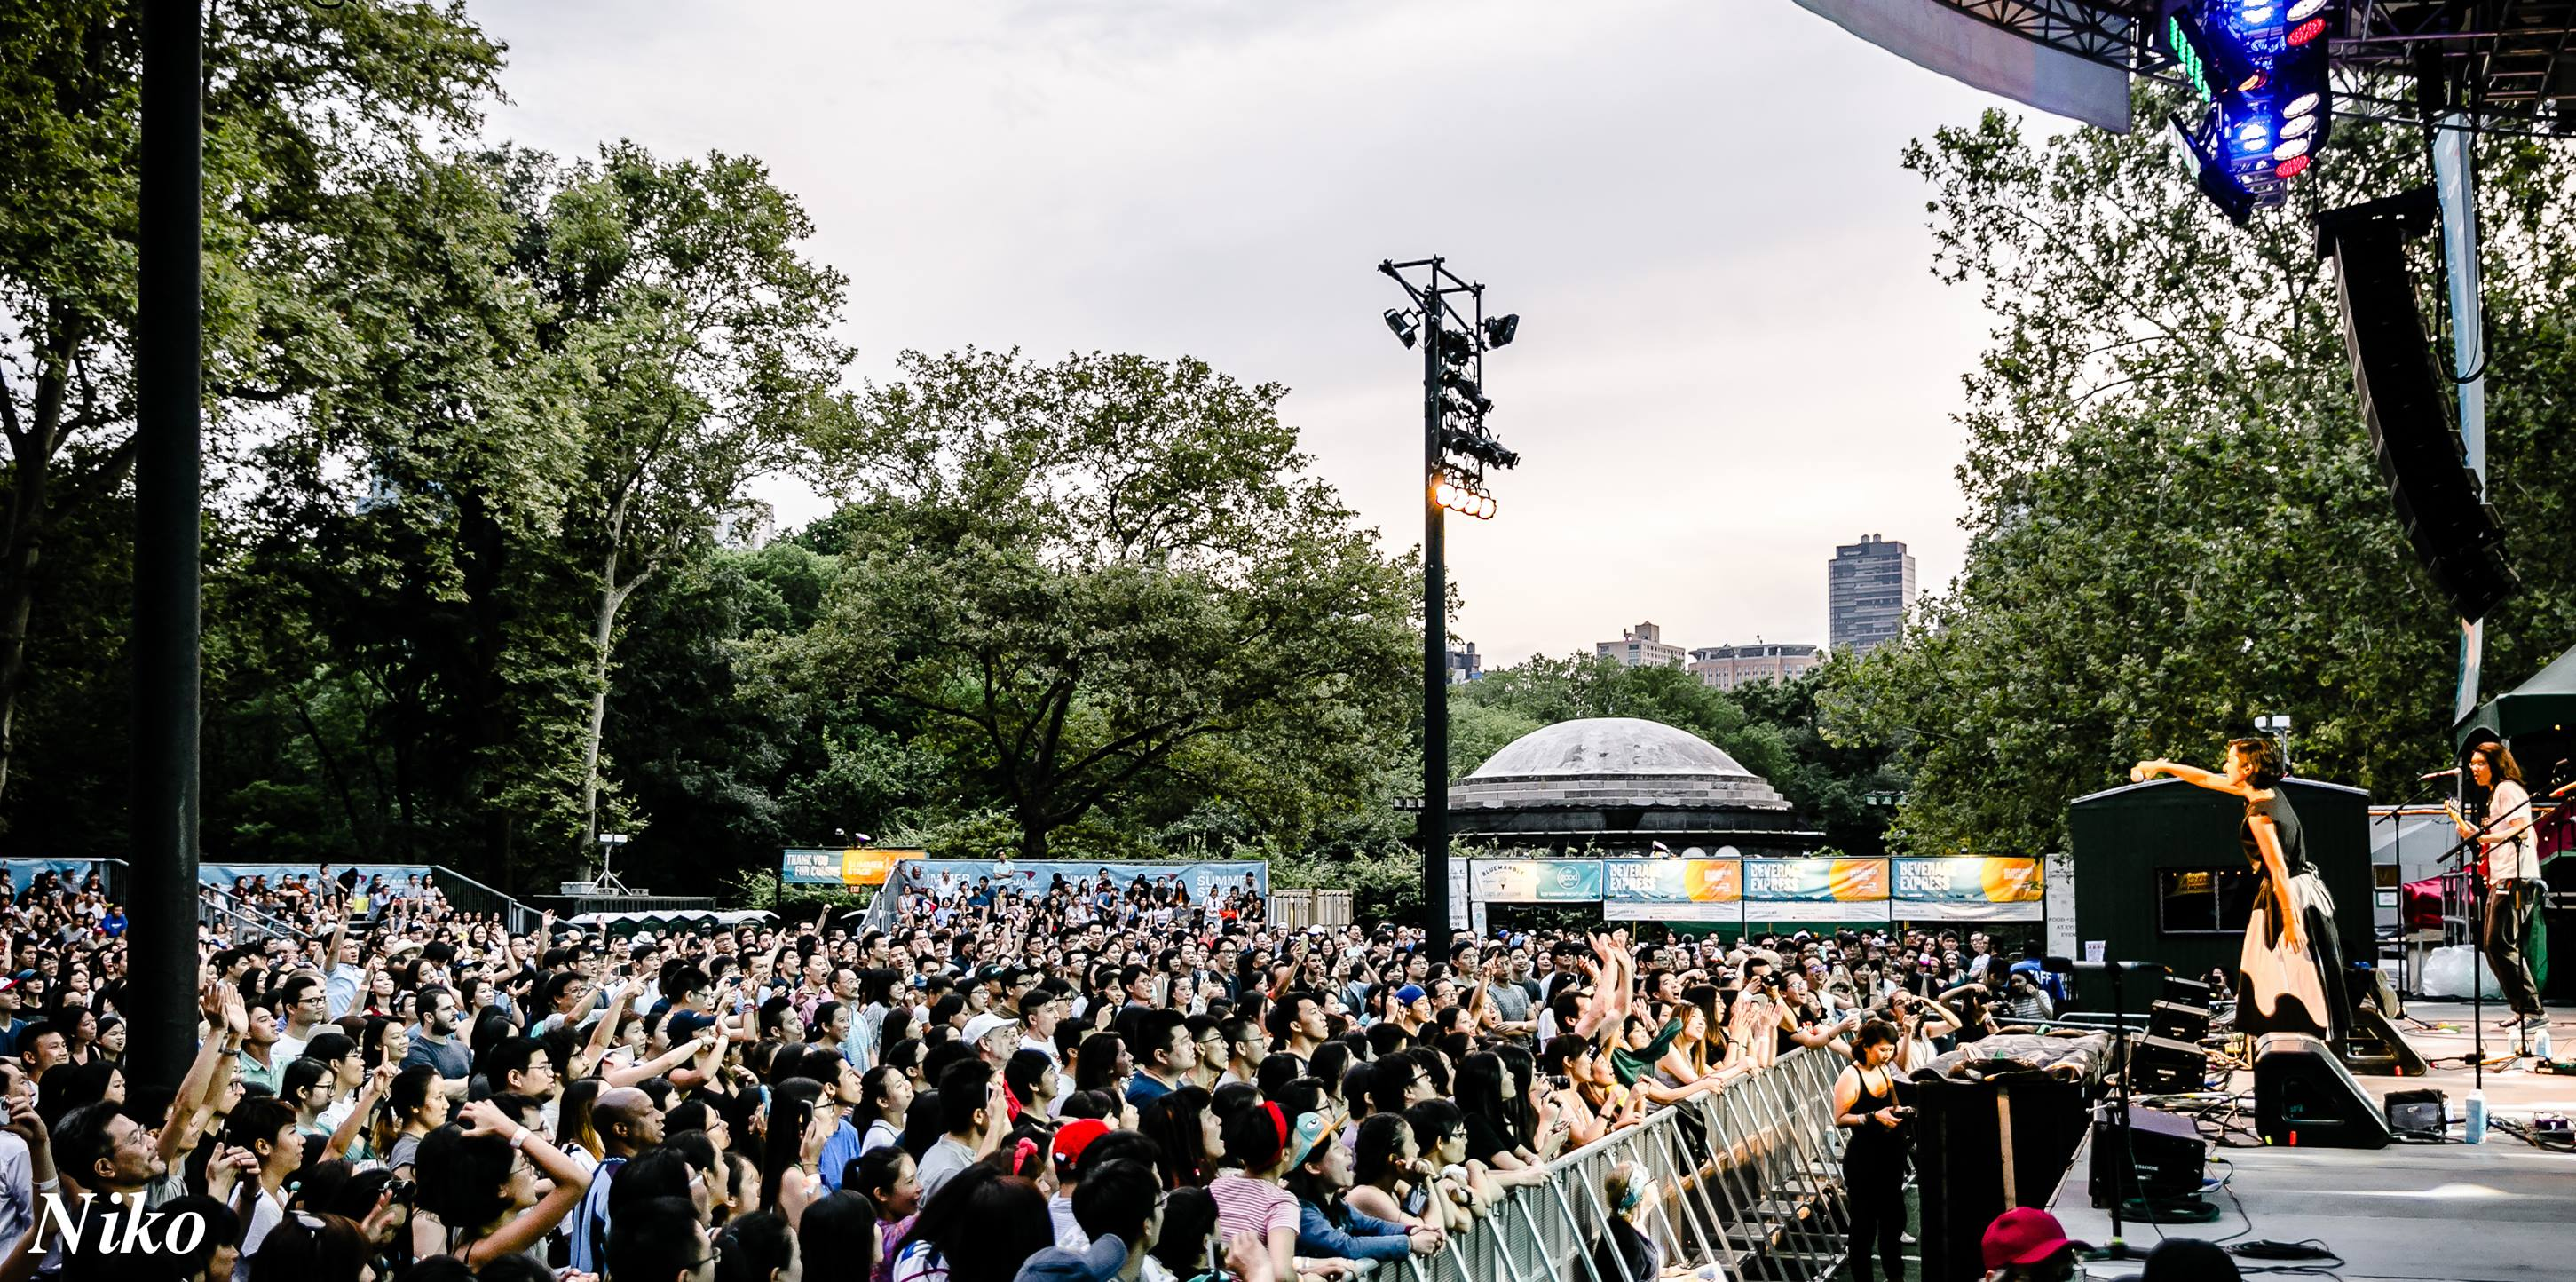 Photo by Niko Taiwanese Waves took place on Saturday, July 16th, in Central Park at...